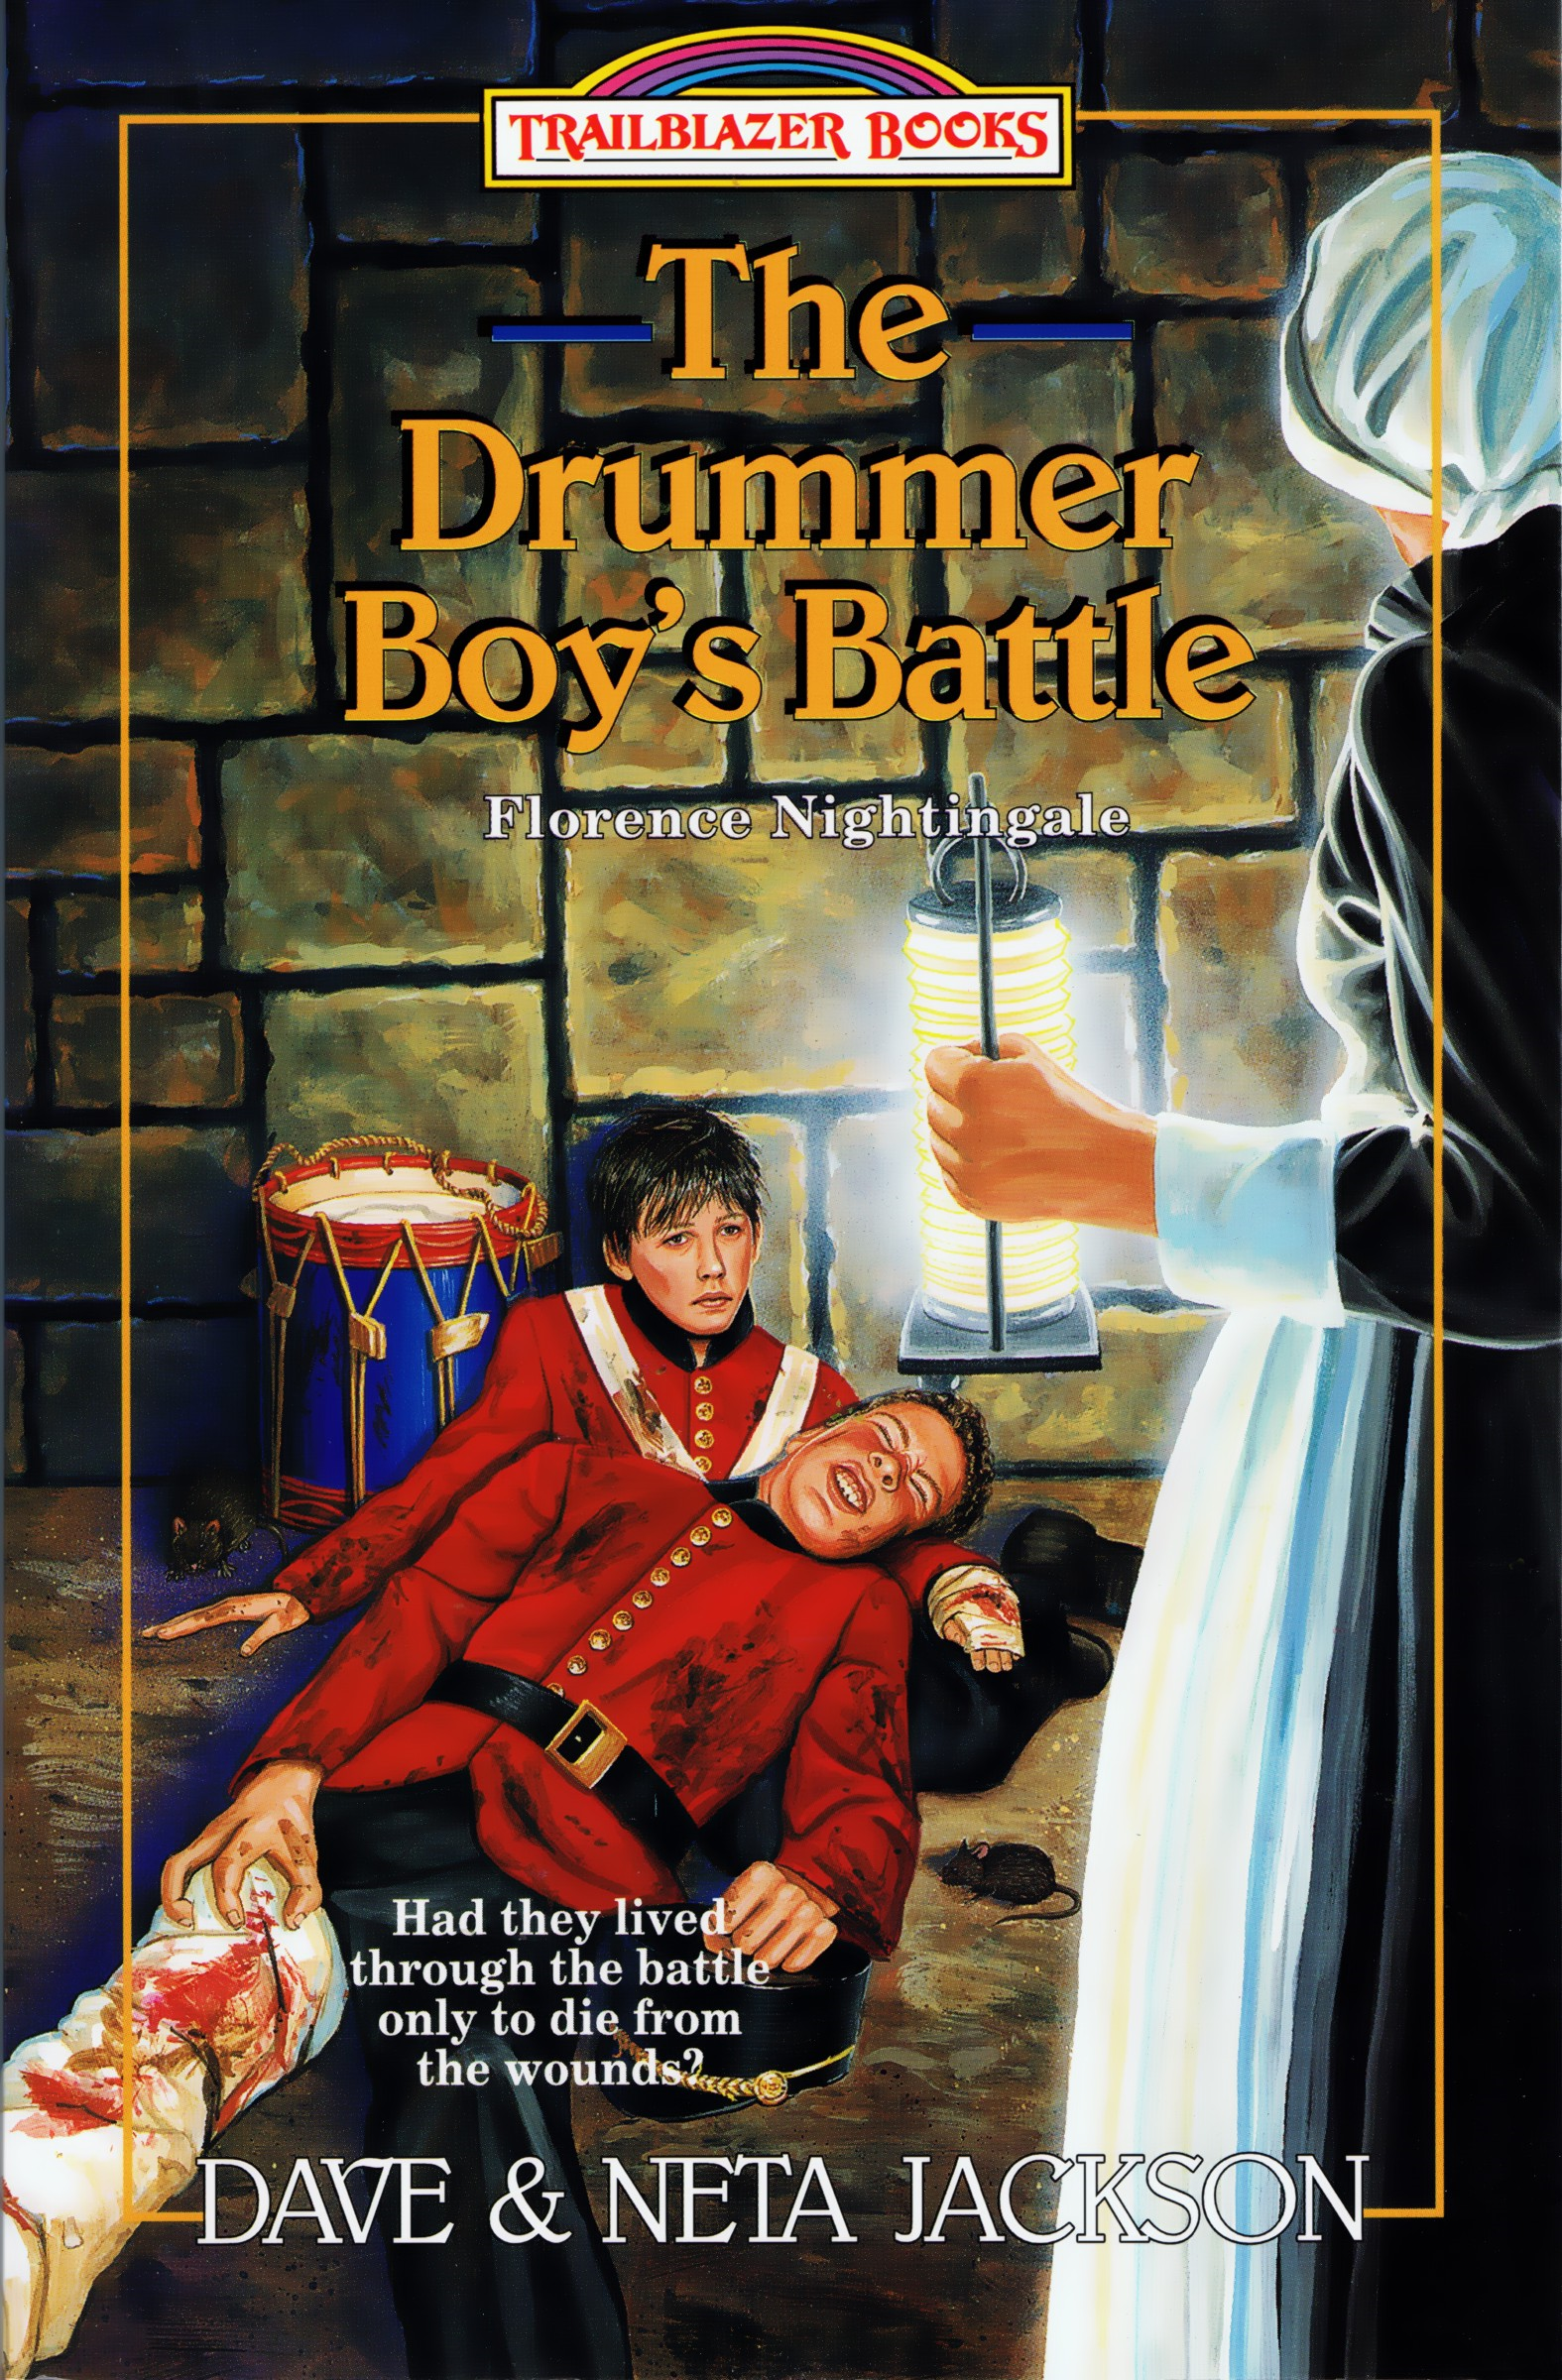 The Drummer Boy's Battle